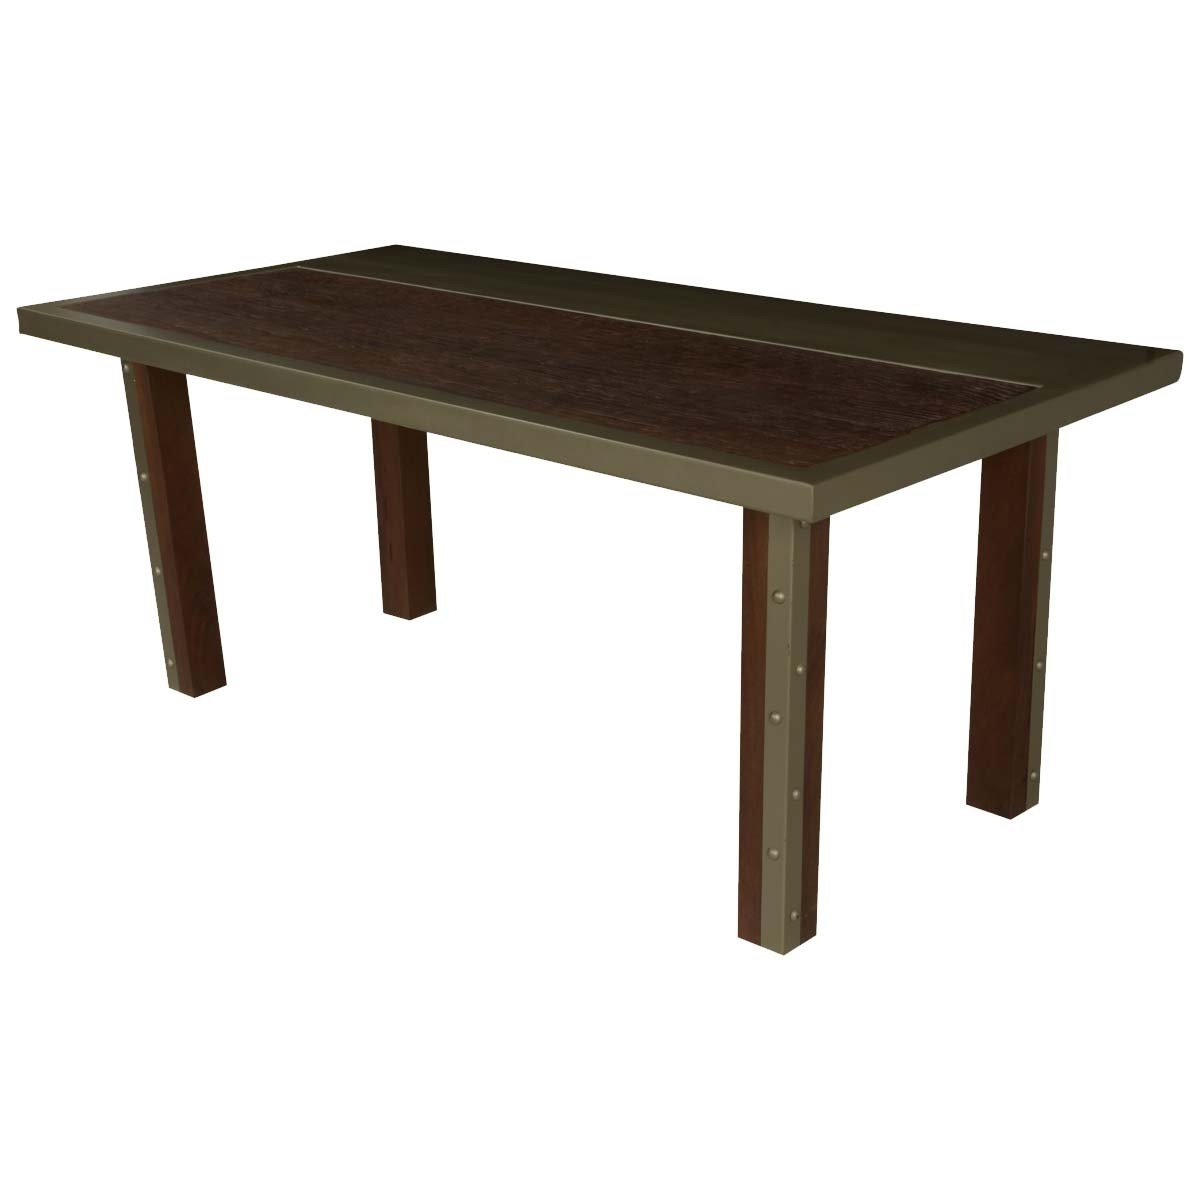 "Modern Industrial Mango Wood & Iron 71"" Dining Table Regarding Current Mango Wood/iron Dining Tables (Image 15 of 20)"